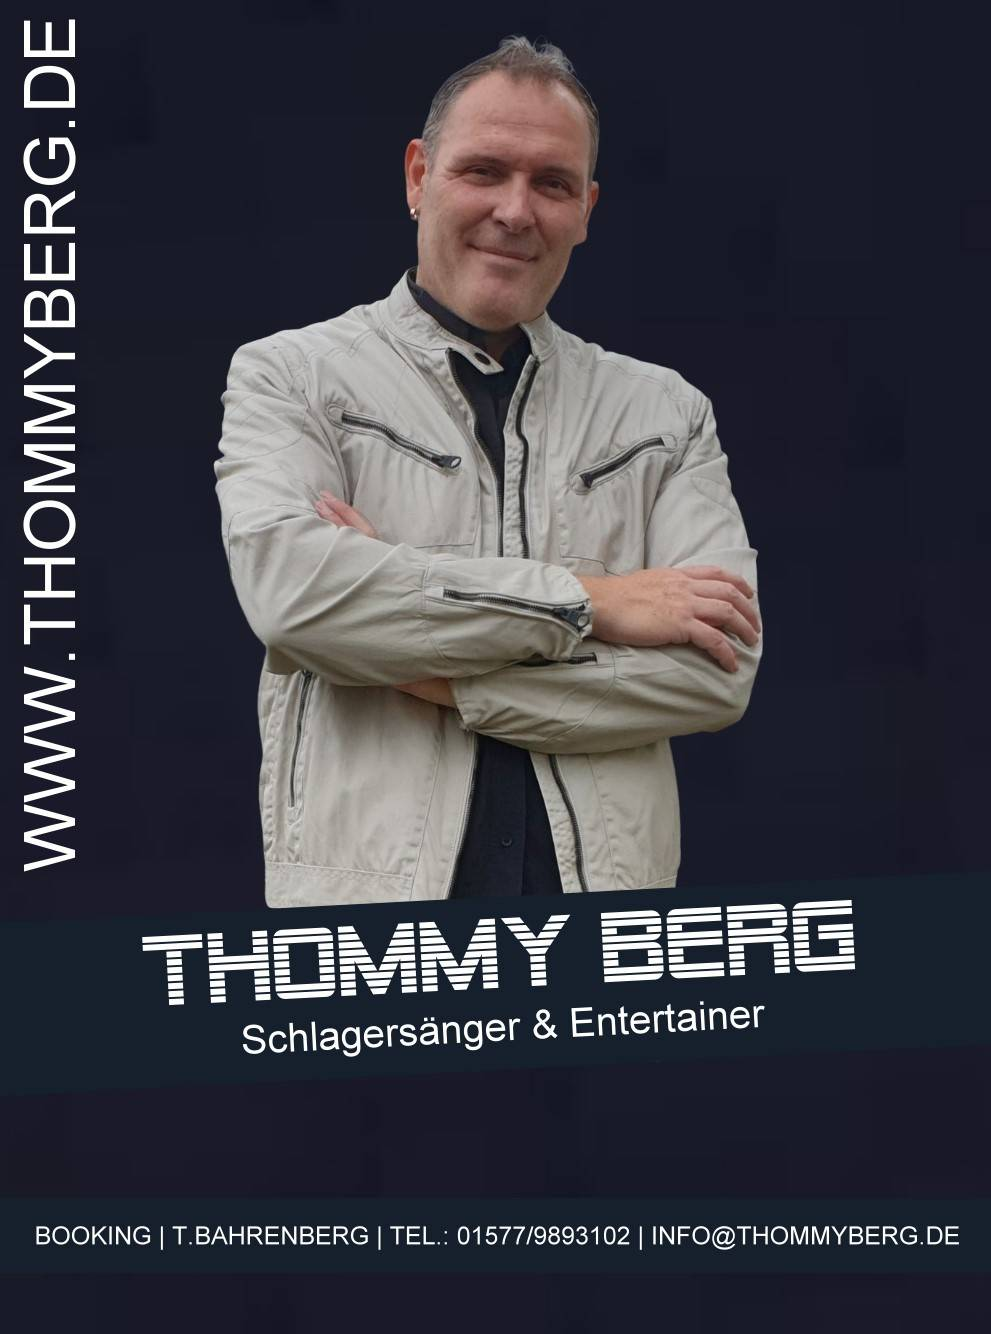 Booking Thommy Berg